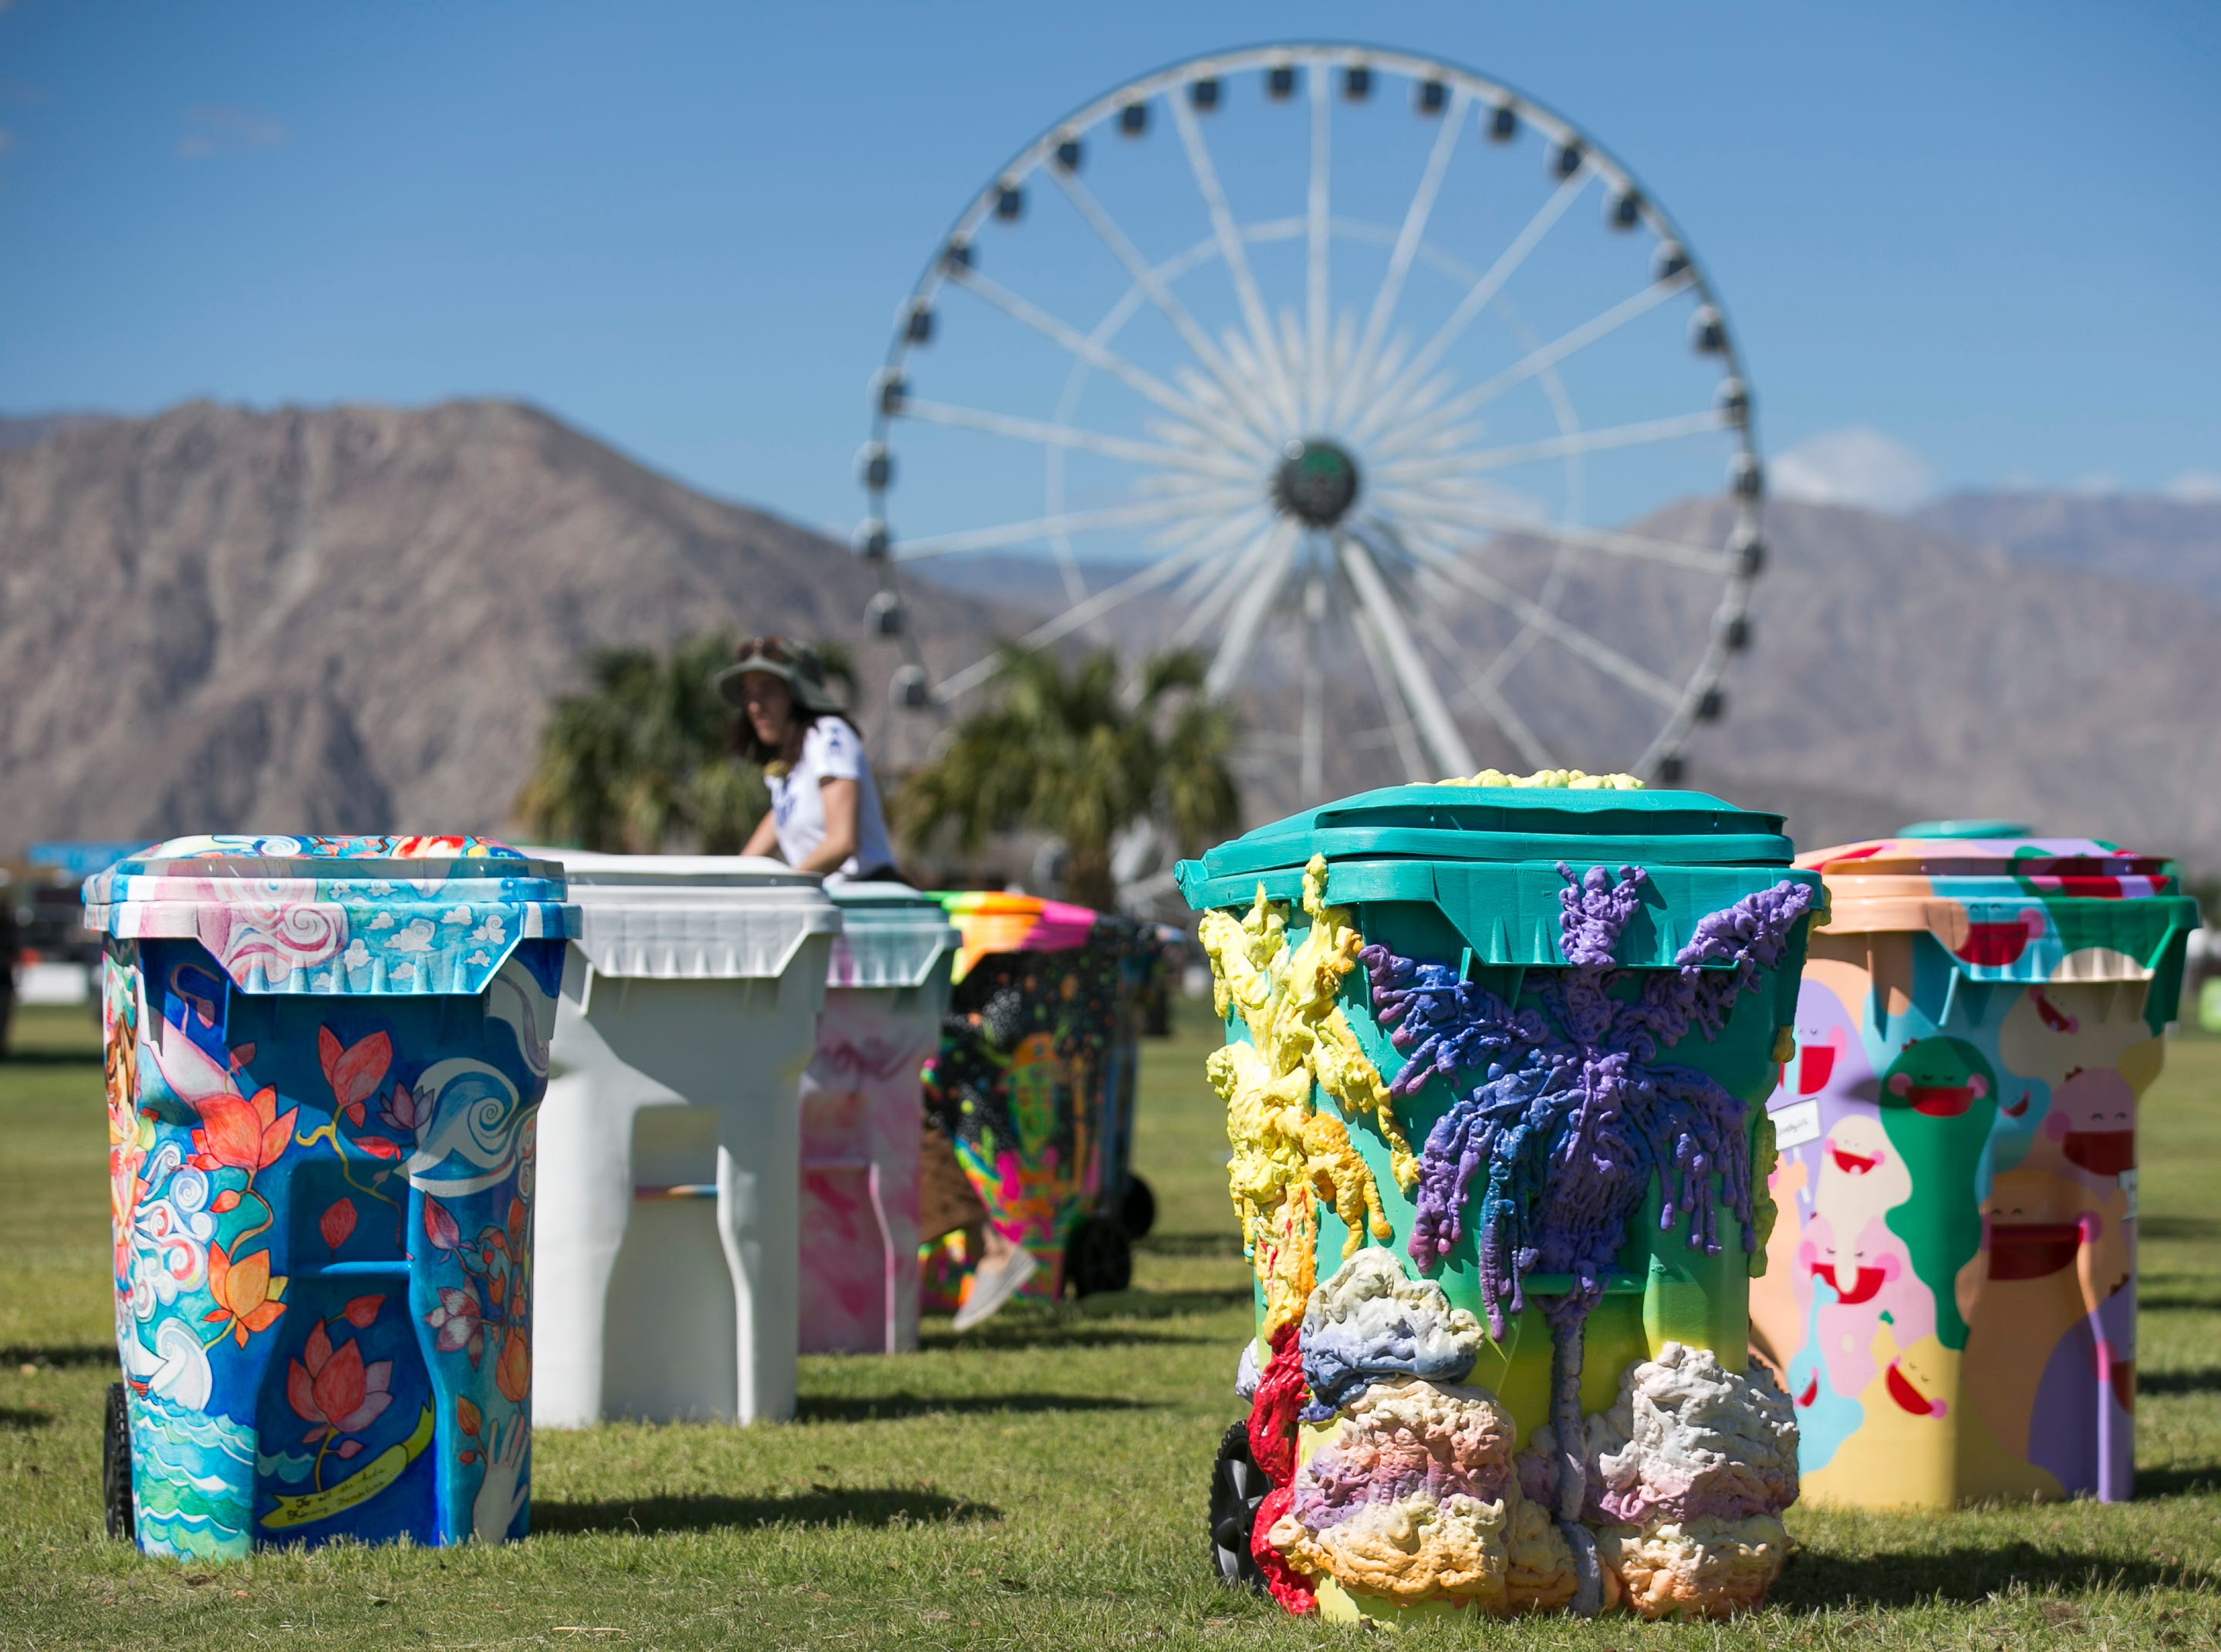 """Art installation """"TRASHed Coachella"""" by Eric Ritz with Global Inheritance sits near the lobby at the Coachella Valley Music and Arts Festival in Indio, Calif. on Fri. April 12, 2019. The bins were set to be donated to schools along the border after the festival."""